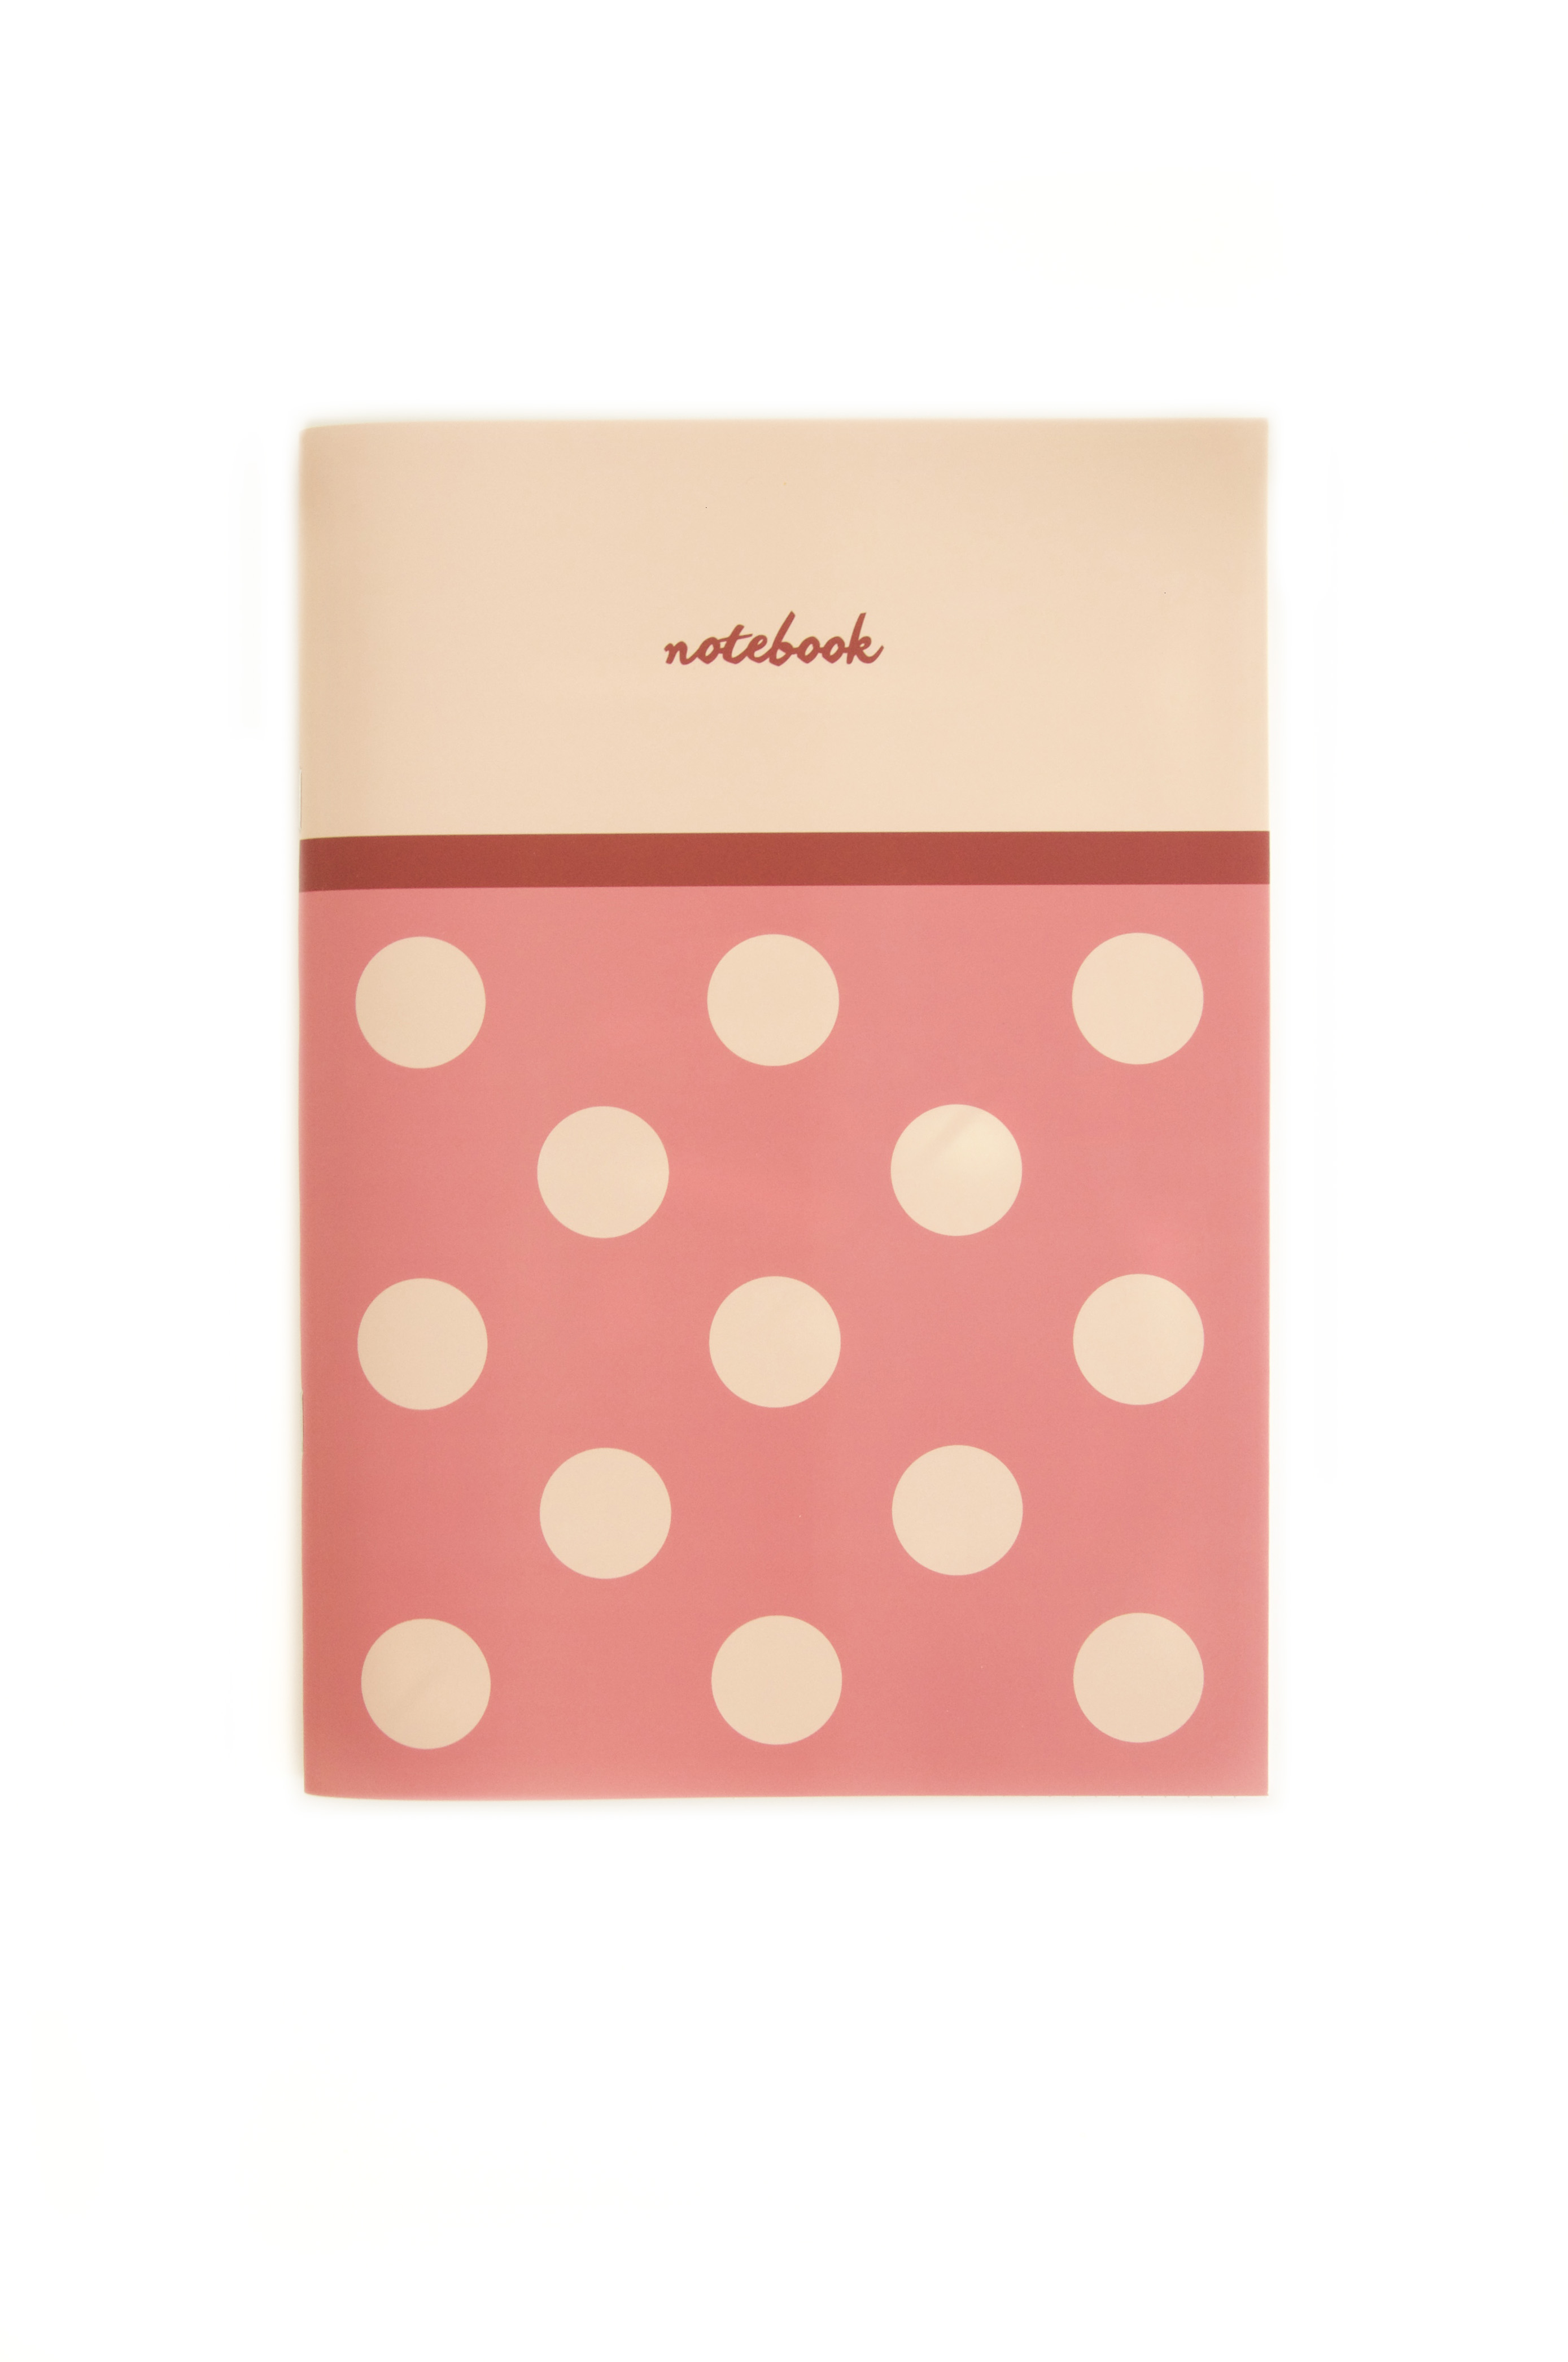 Big Polka Dots // A4 Lined Notebook